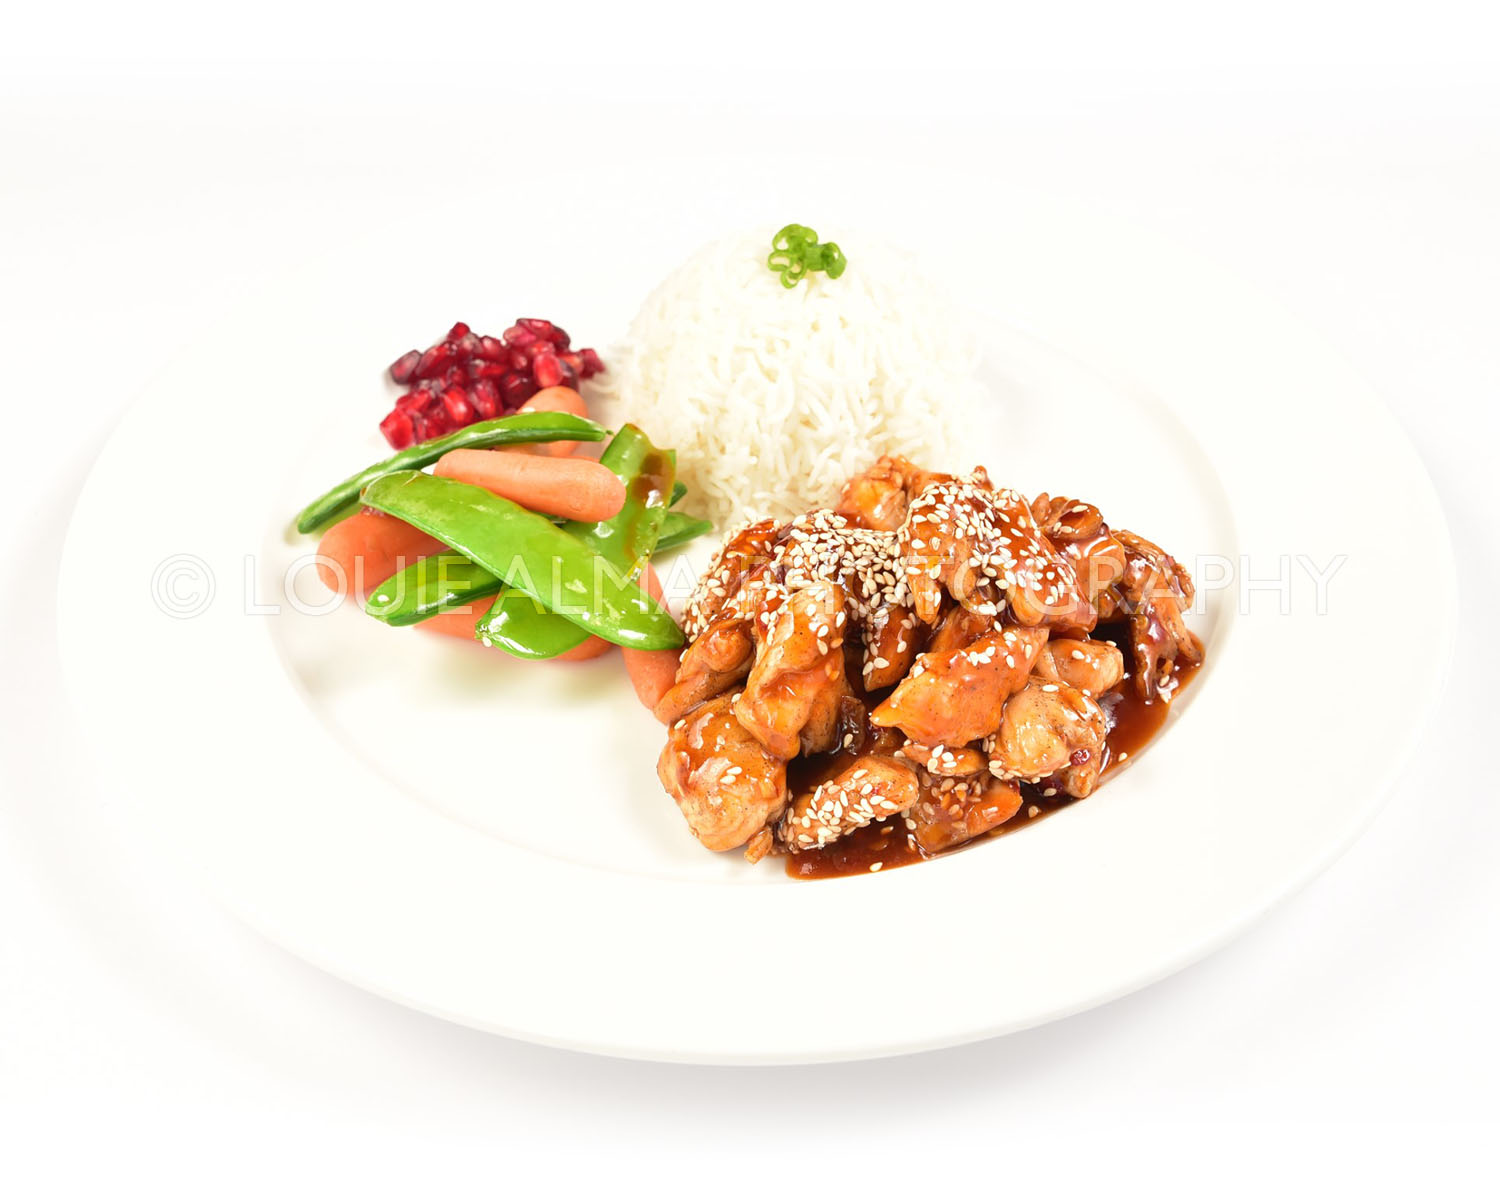 LouieAlmaPhotography_Food_Protein&Carb_SweetSpicyChicken